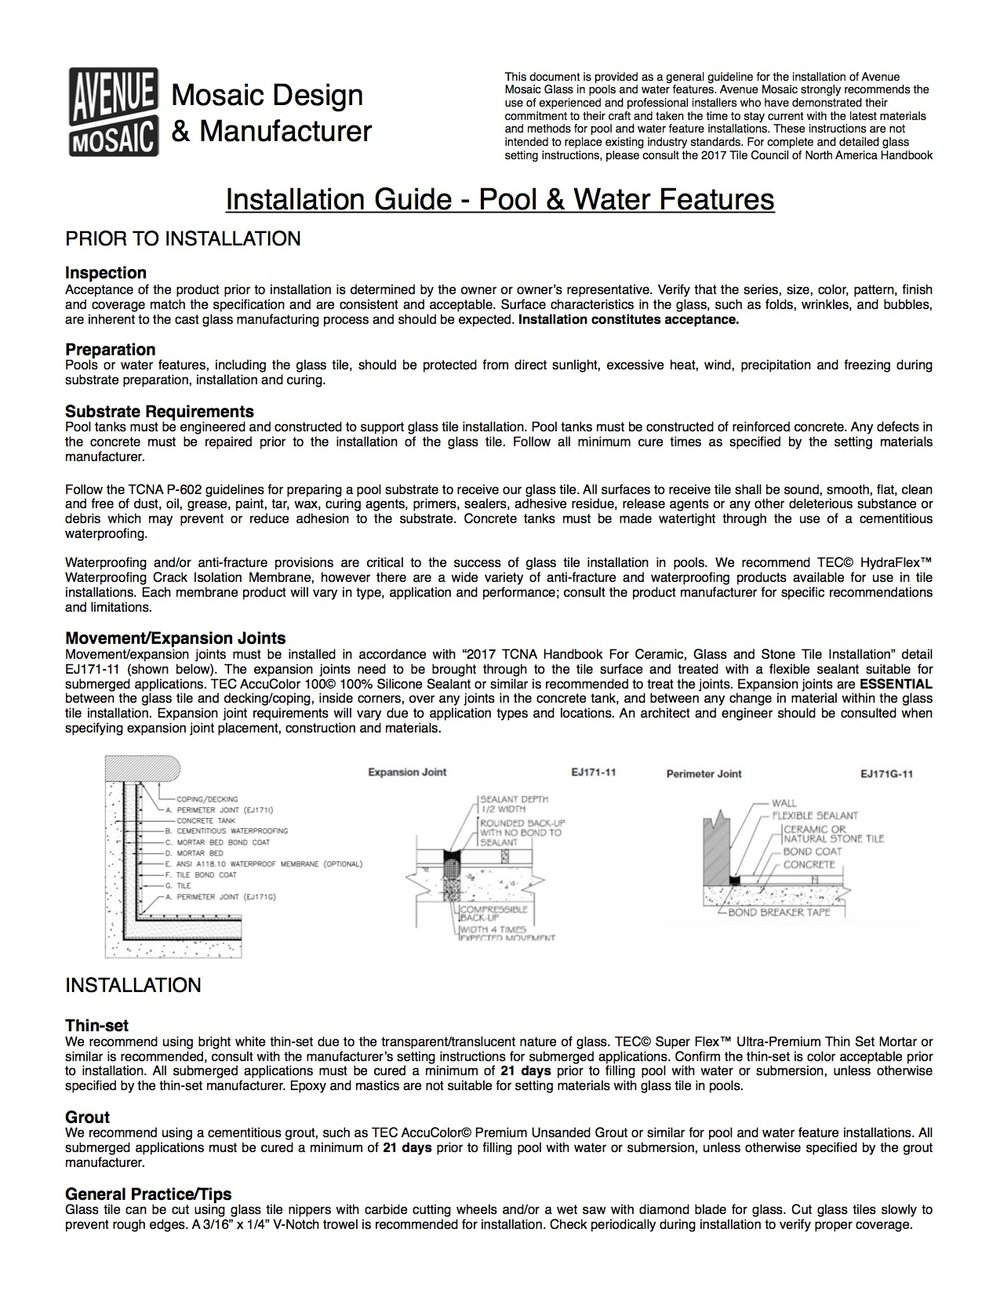 Pool/Water Feature Installation Guide.pdf